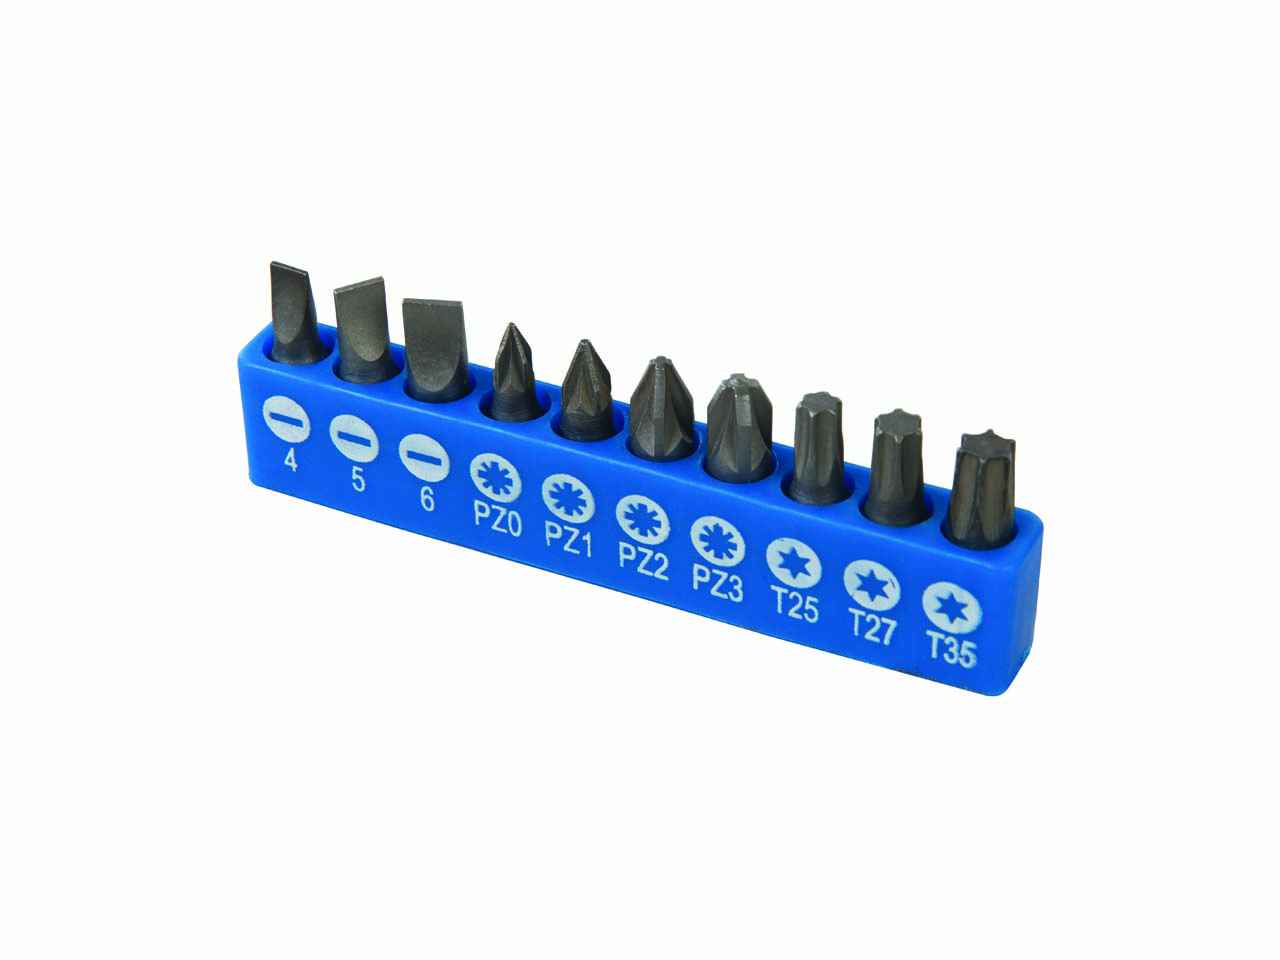 Angle Screwdriver Bit Holder Set Corossion Resistant /& Steel Construction 12Pc